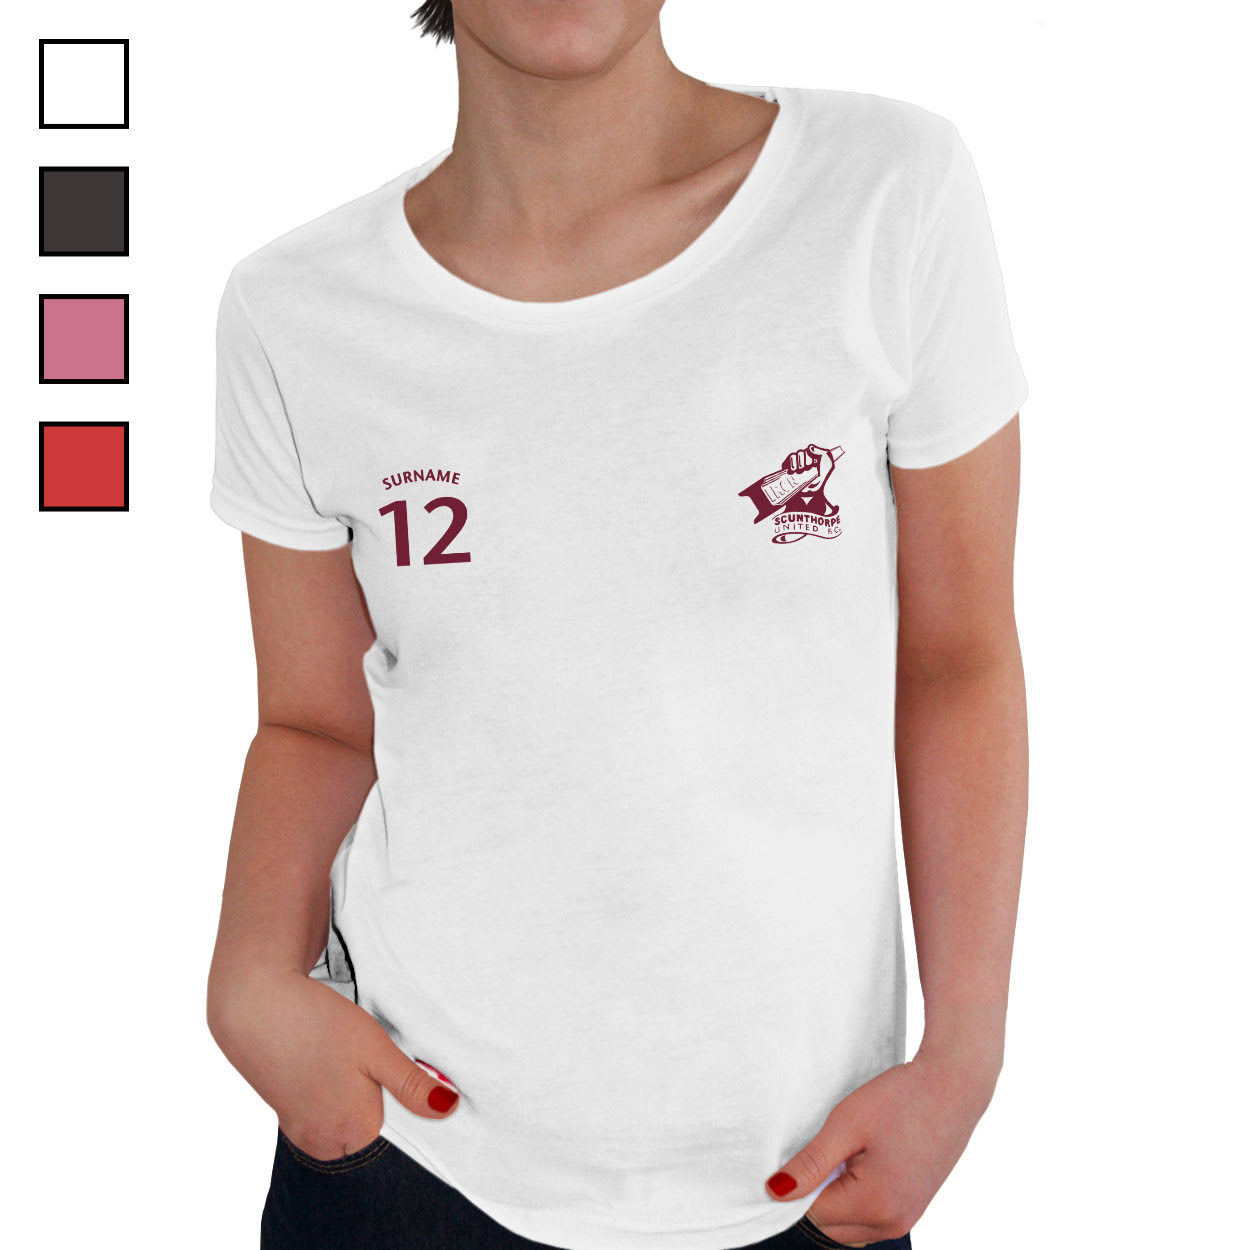 Scunthorpe United FC Ladies Sports T-Shirt